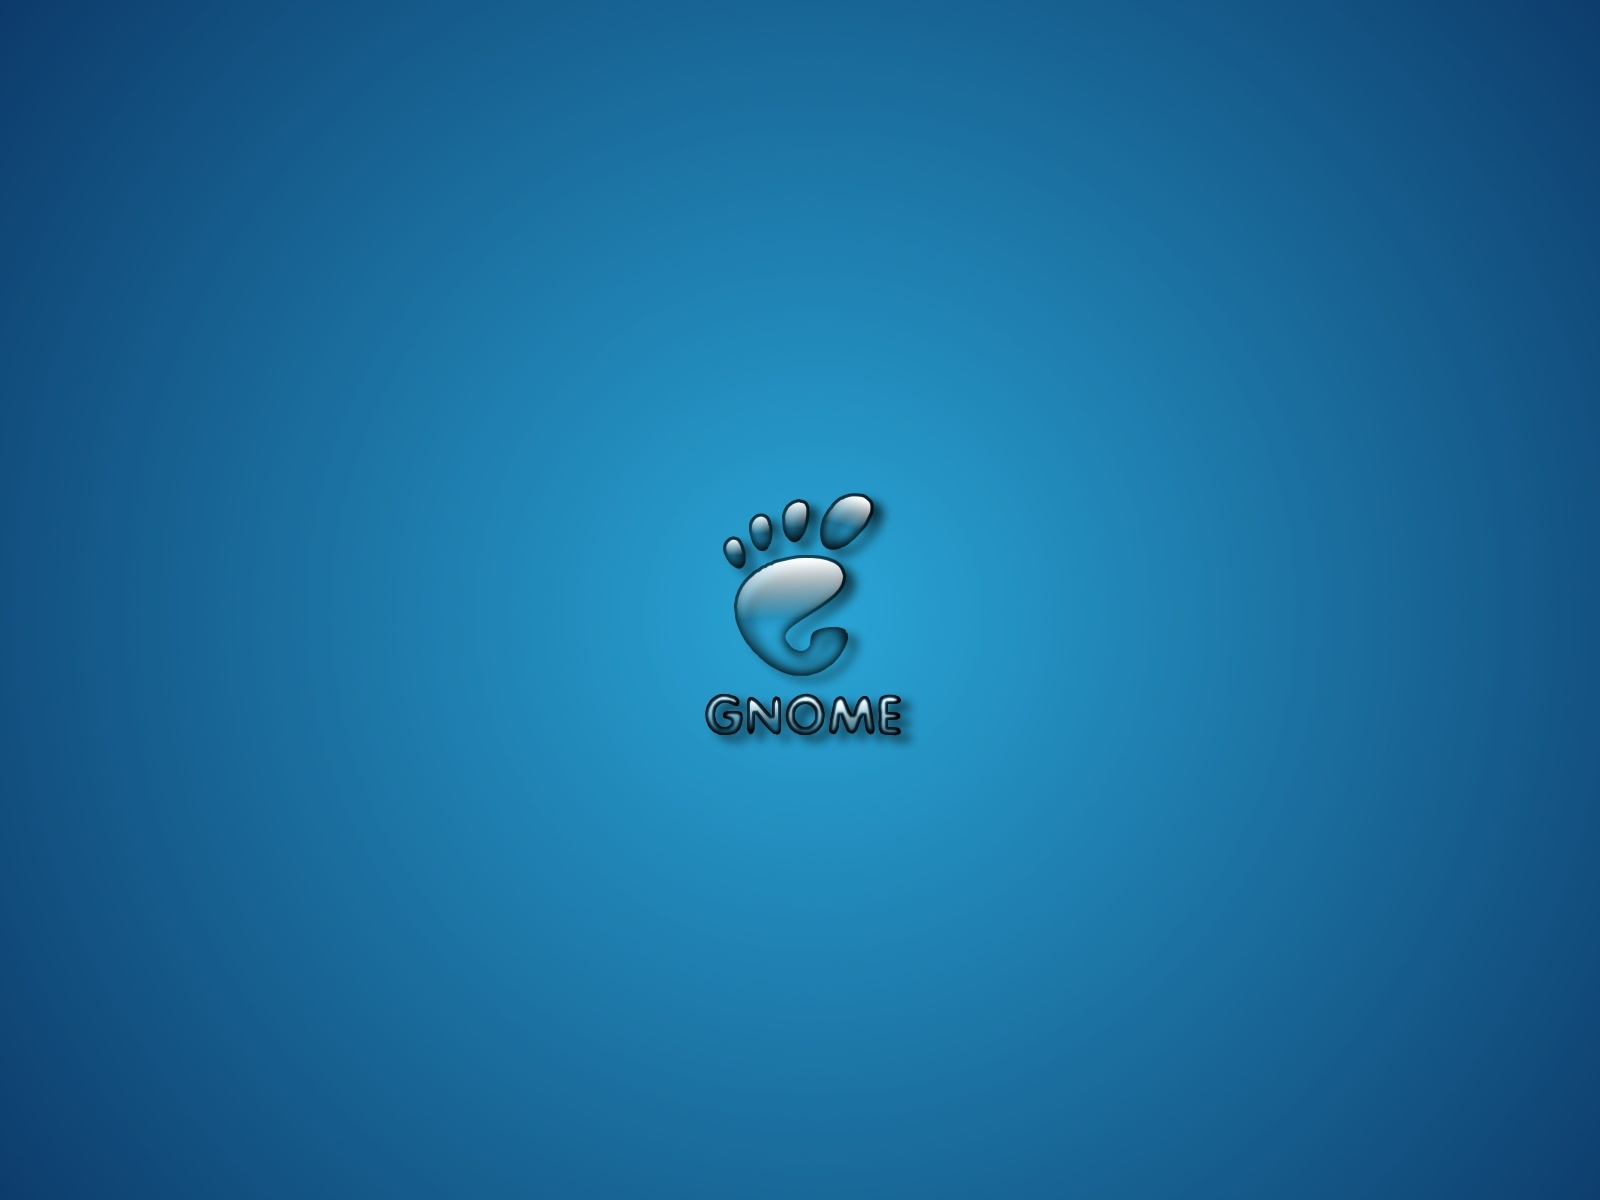 gnome linux 1600x1200